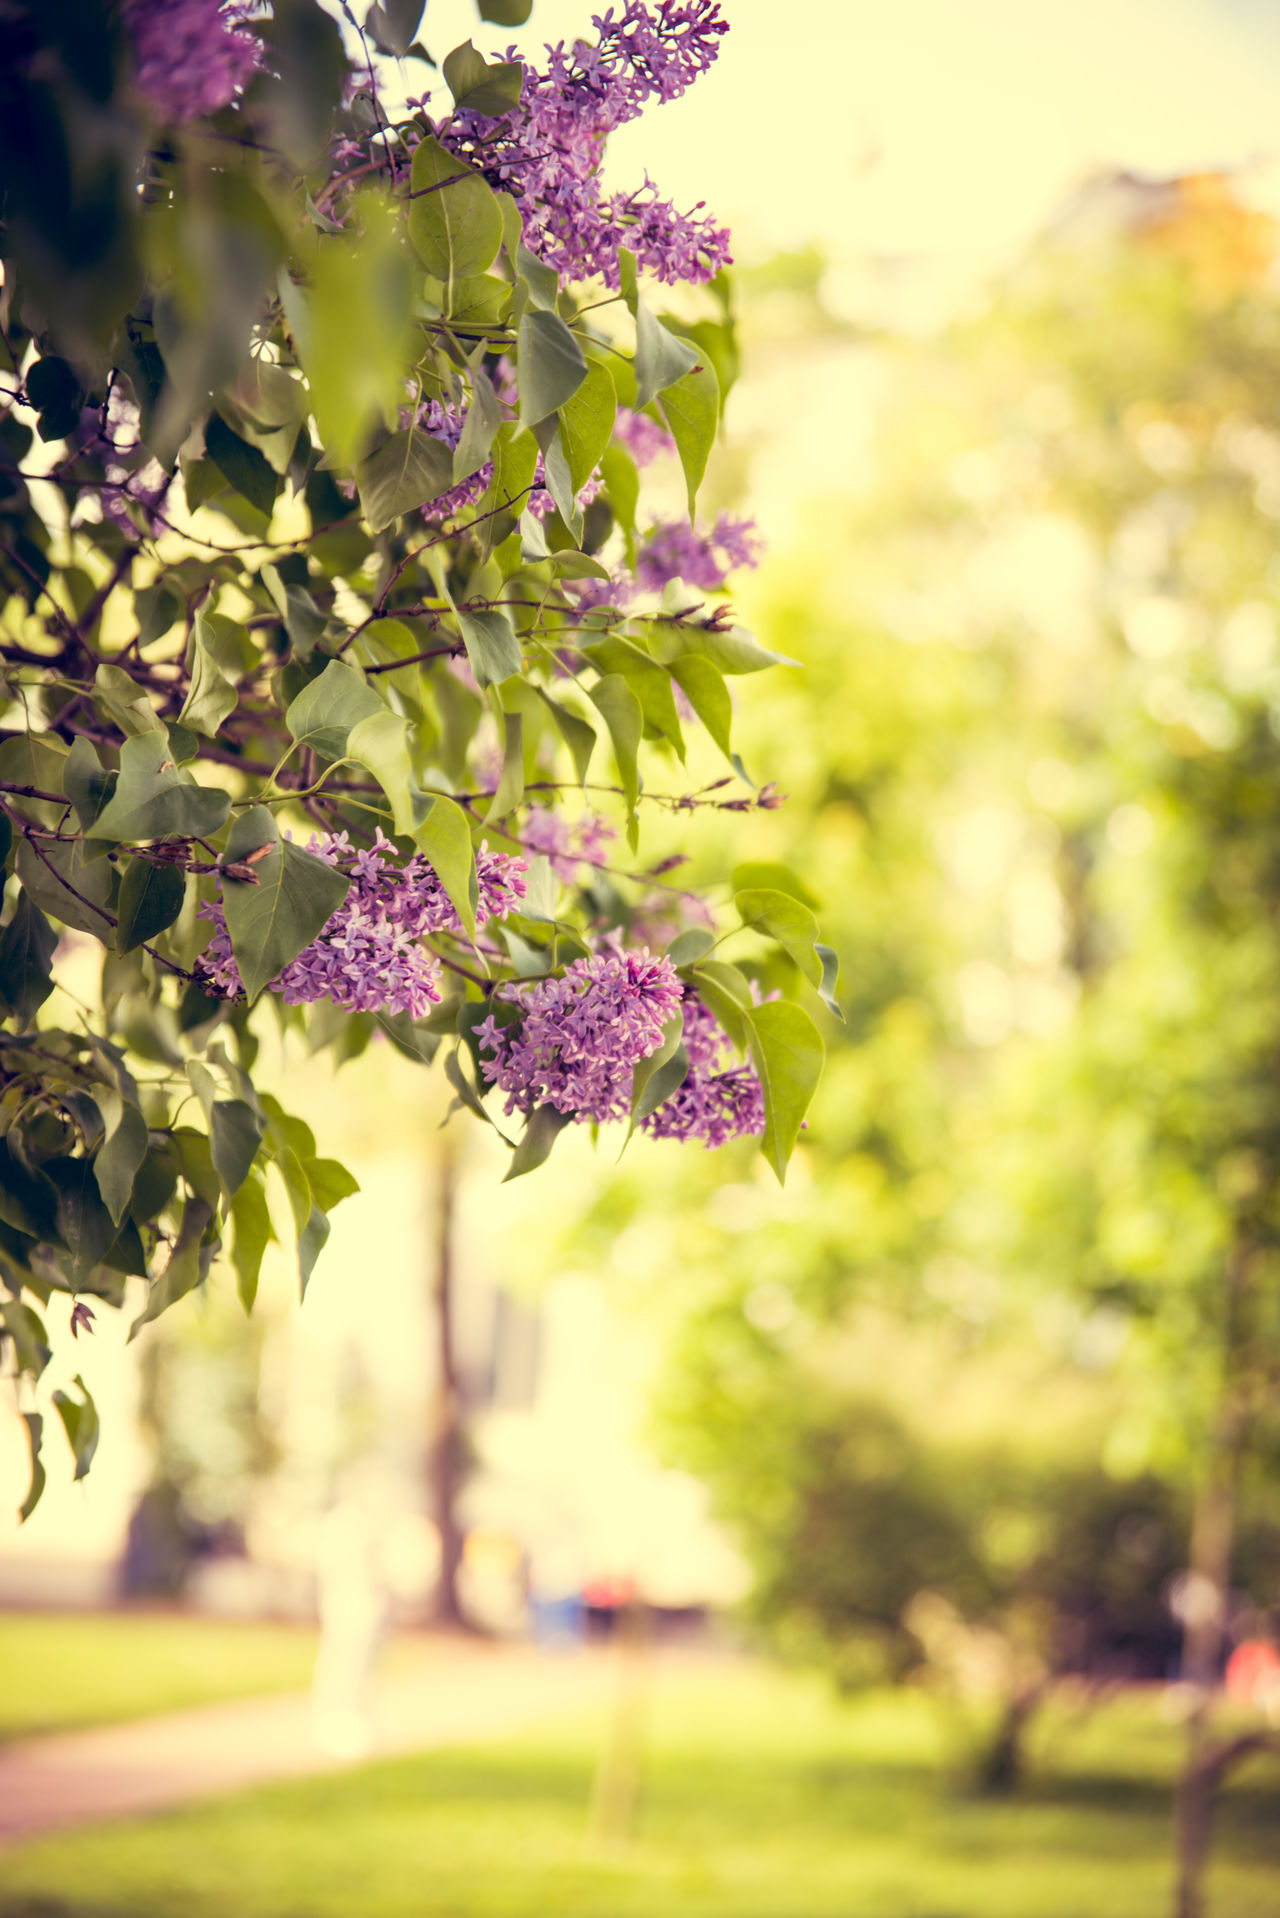 Beauty In Nature Blooming Close-up Day Flower Flower Head Focus On Foreground Fragility Freshness Growth Lilac Nature No People Outdoors Park - Man Made Space Petal Plant Purple Tree